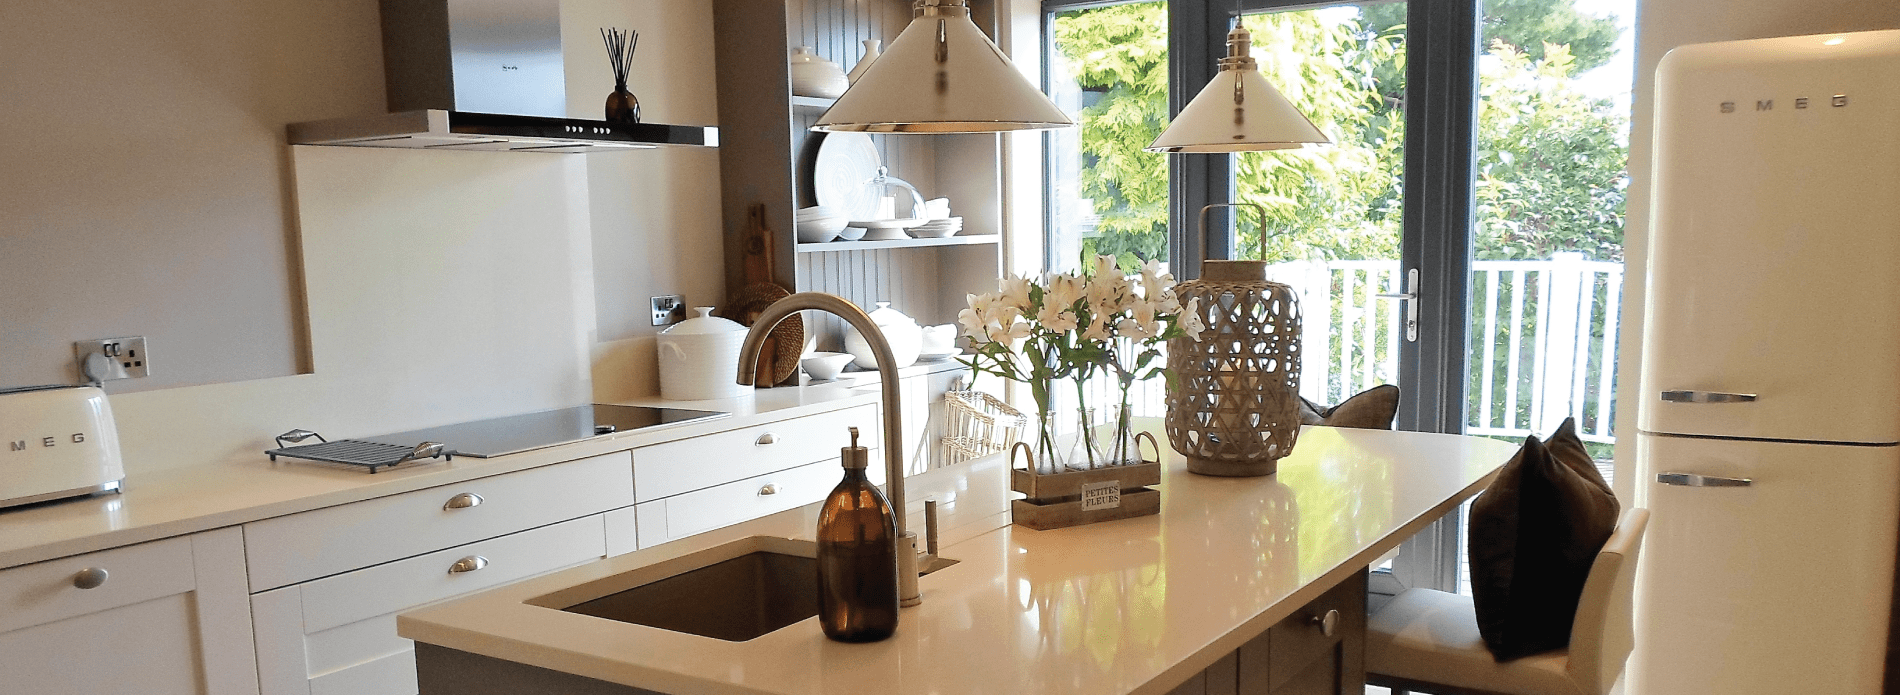 A Perfectly Crafted Kitchen Breathes New Life Into A Home